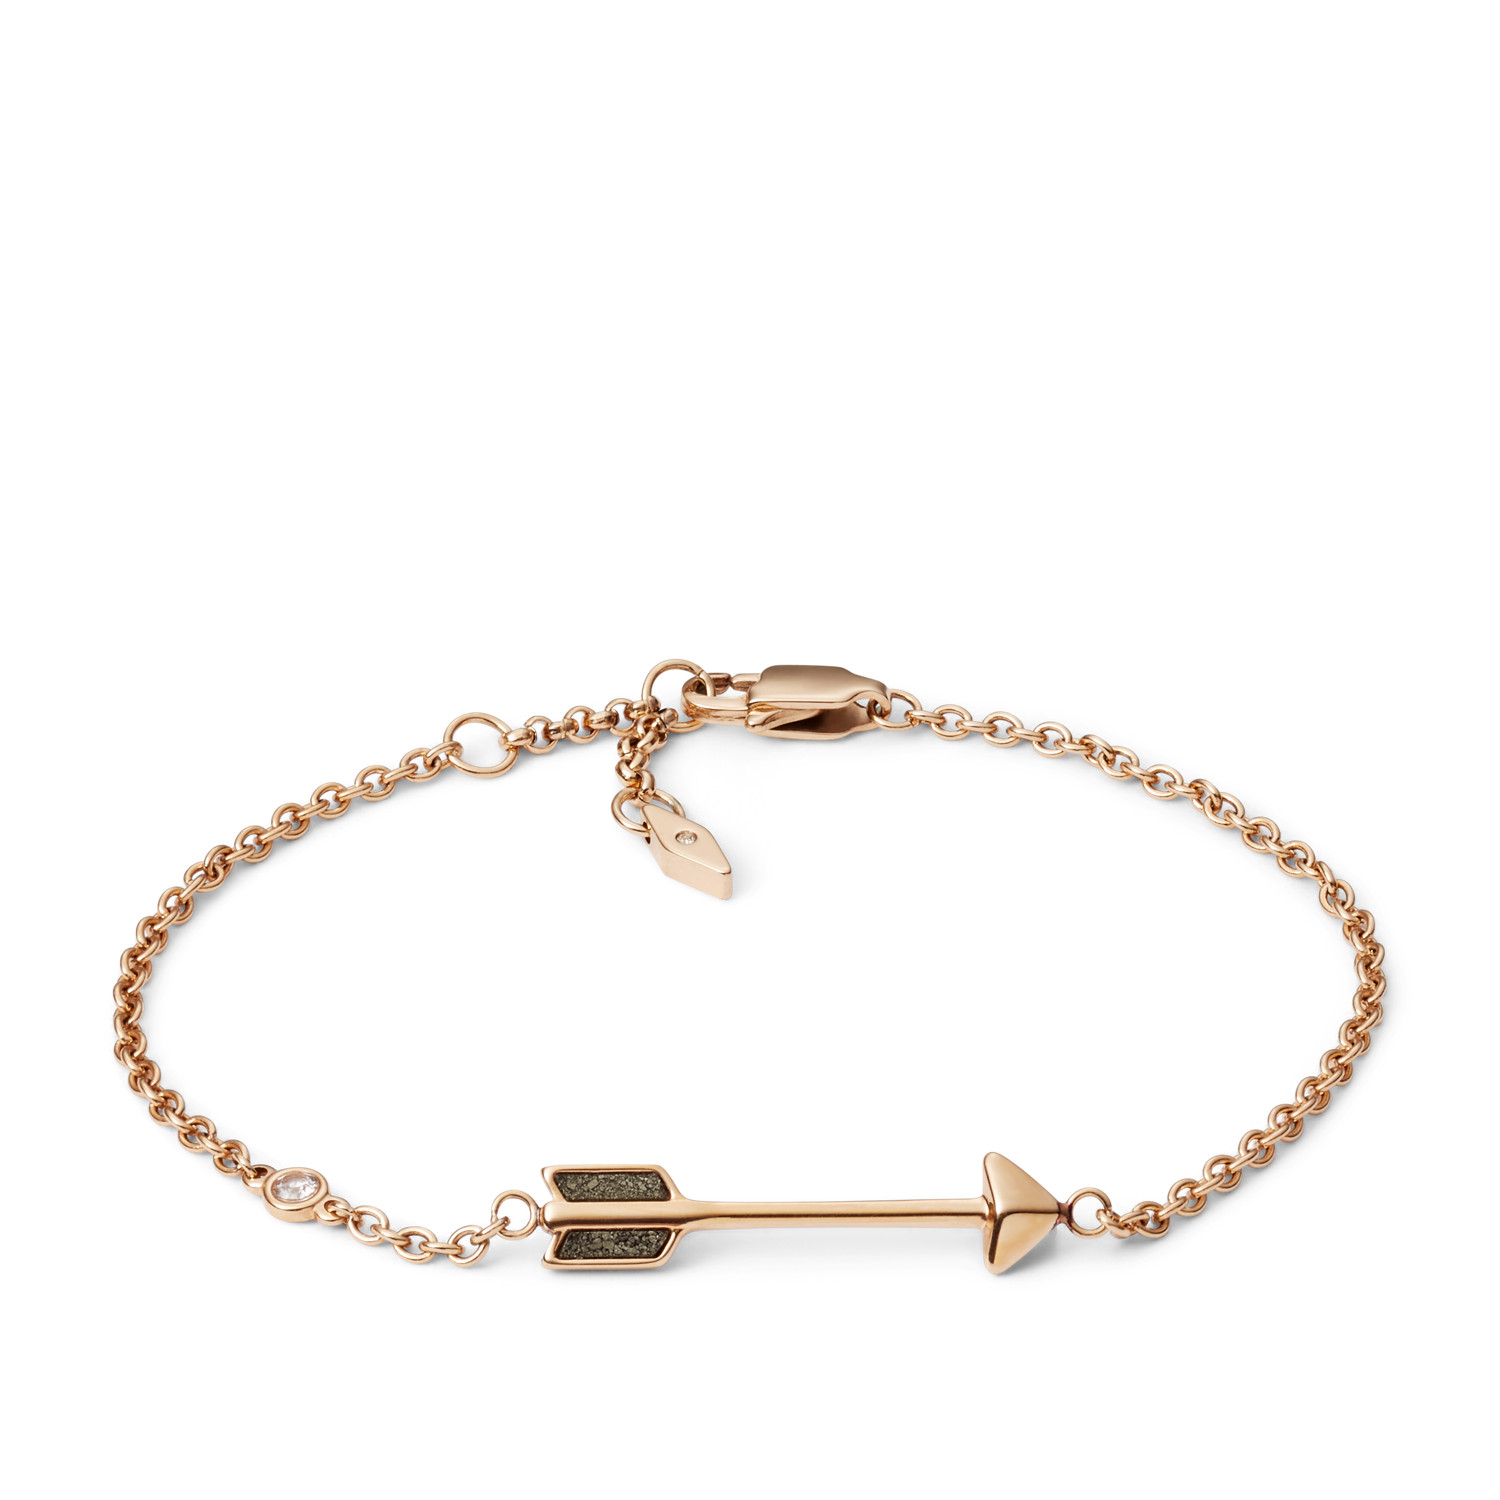 products retro retrospective shot jewellery bracelet arrow